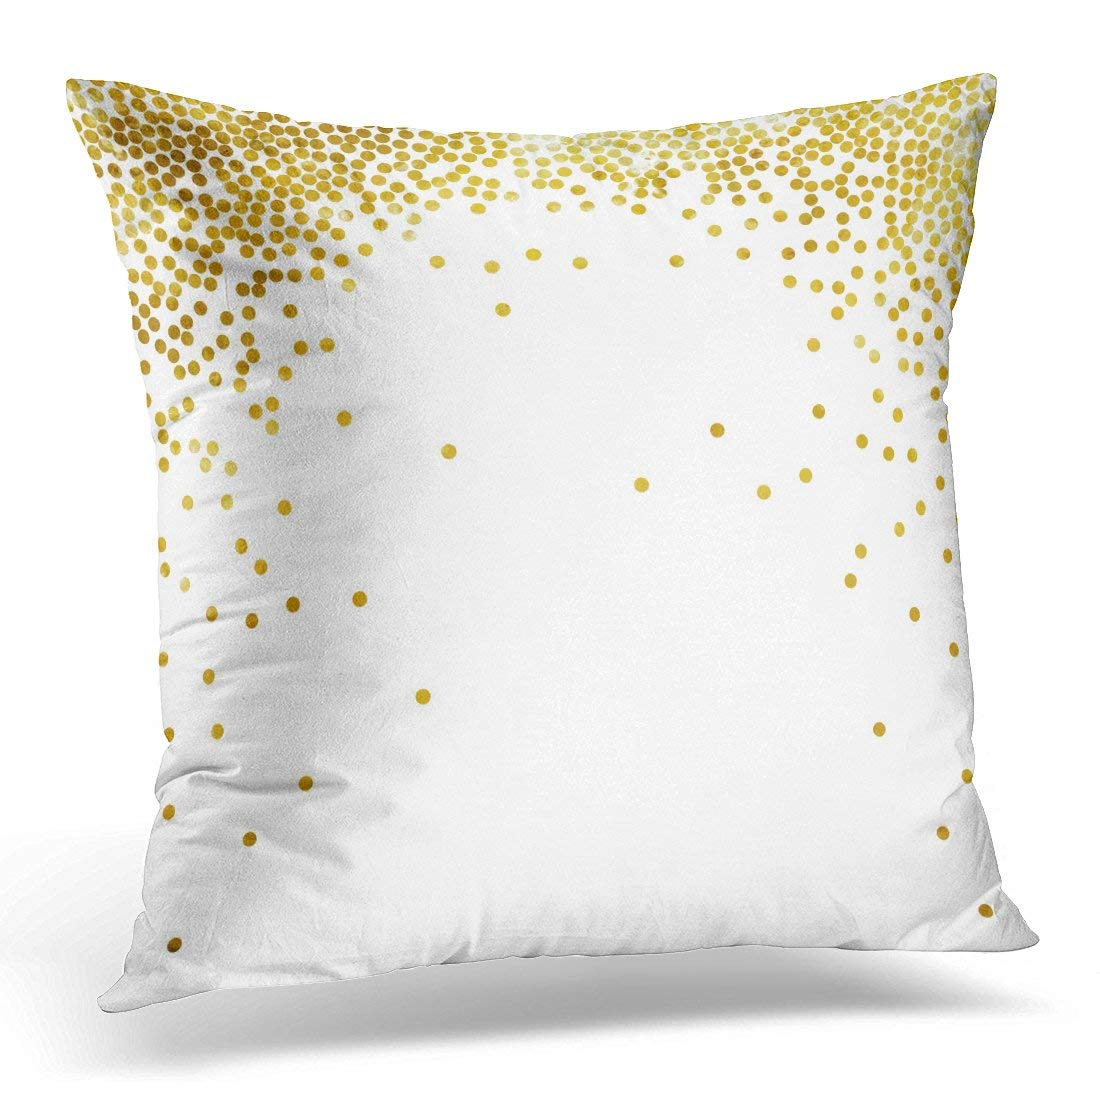 USART White Abstract Gold Glitter Polka Dot Yellow Birthday Pillow Case Pillow Cover 20x20 inch